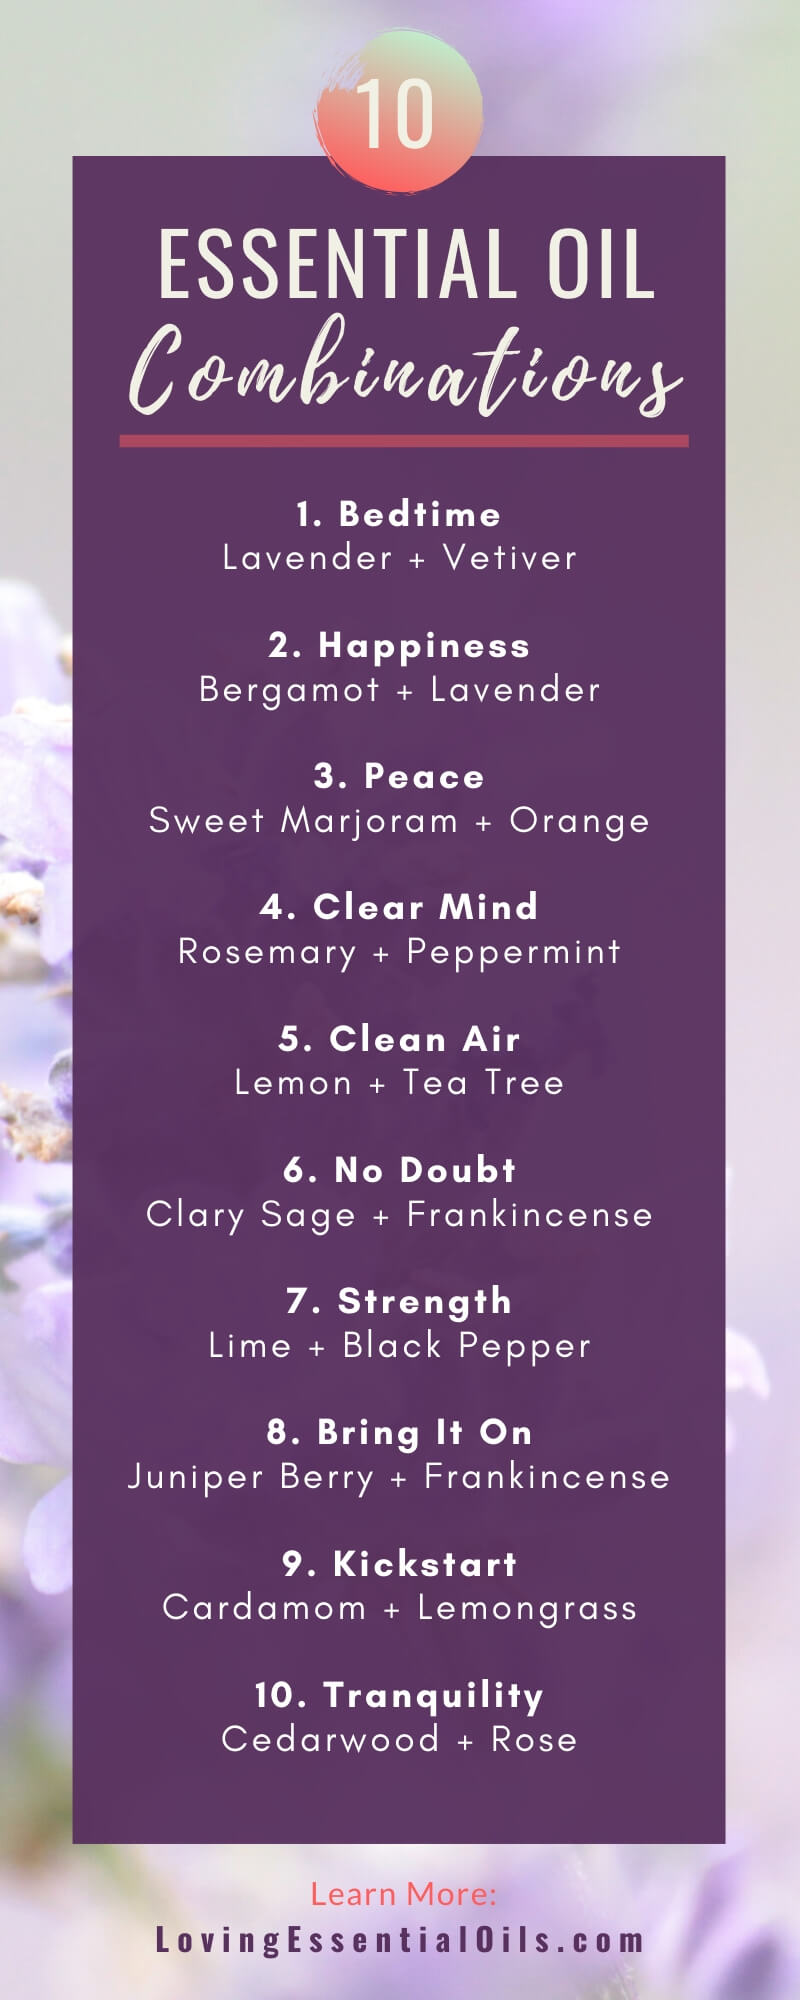 9 Simple Essential Oil Combinations For Diffuser